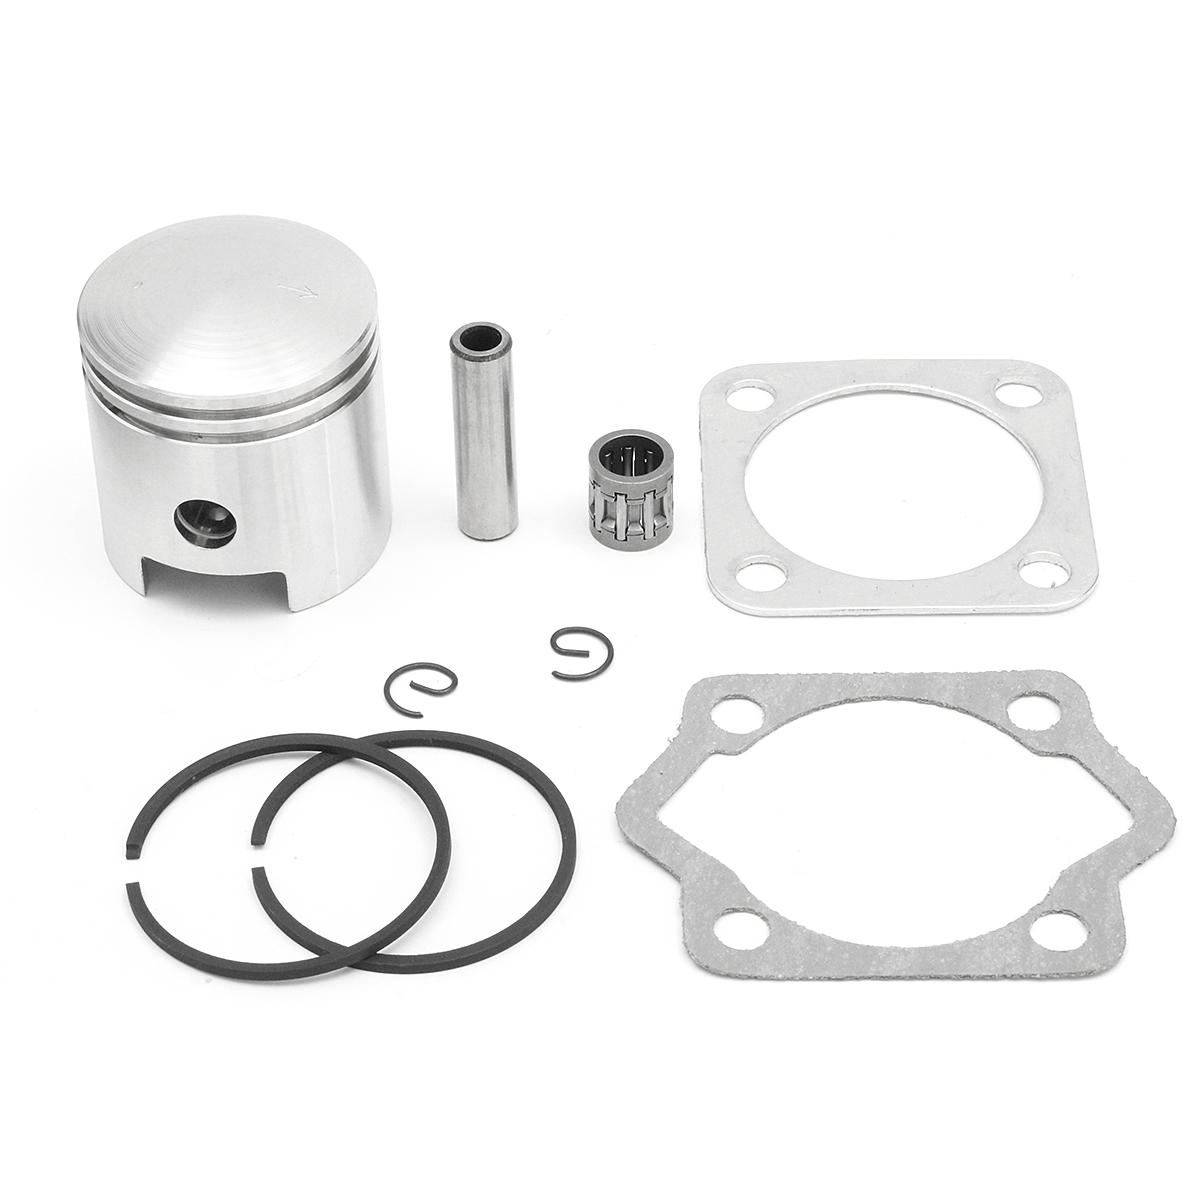 Universal Piston Cylinder Gasket Rings Engine Kit For 2 Stroke 80cc Engine Motor